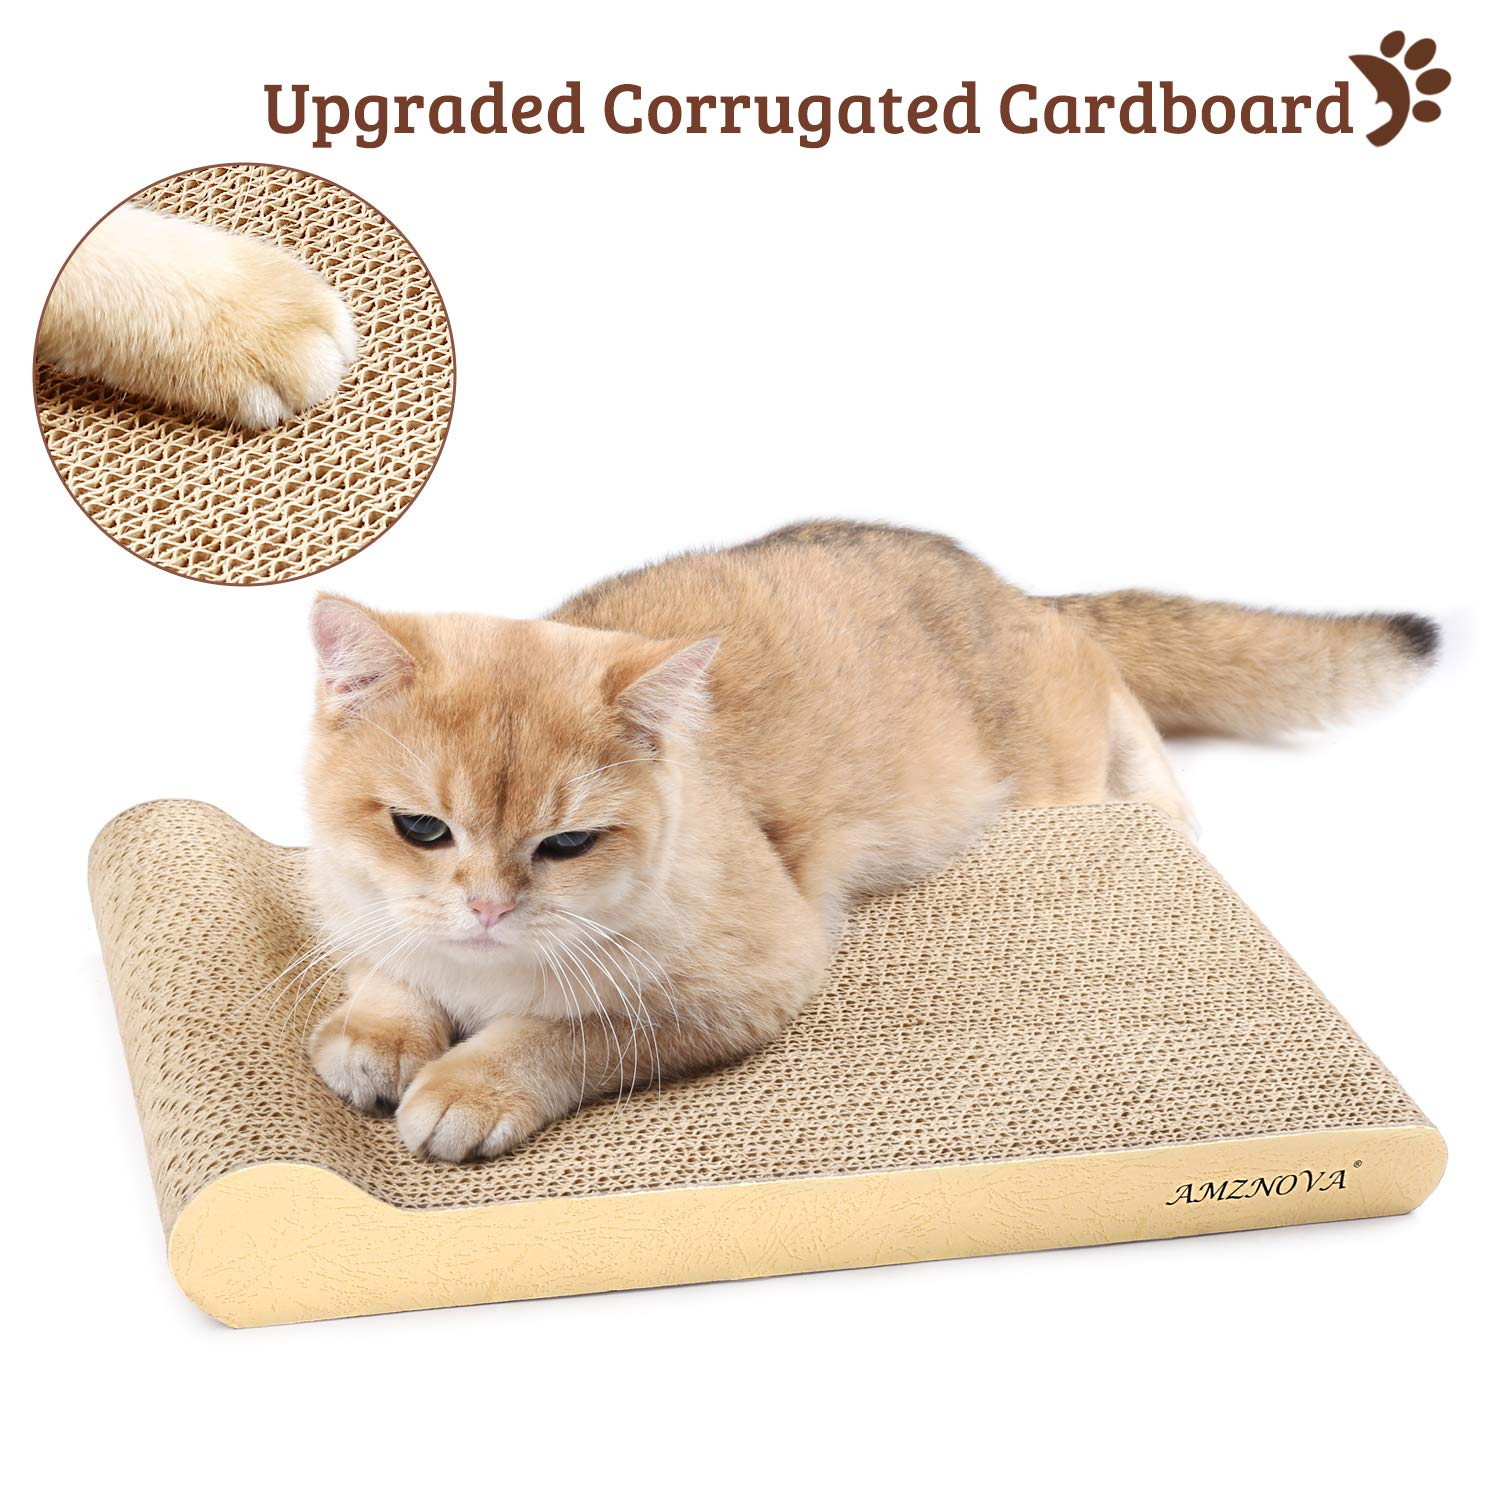 Catnip Included Corrugated Cardboard Scratch Lounge 1 Pack Durable Kitty Scratching Pad with Bottom Textured White AMZNOVA Cat Scratchers